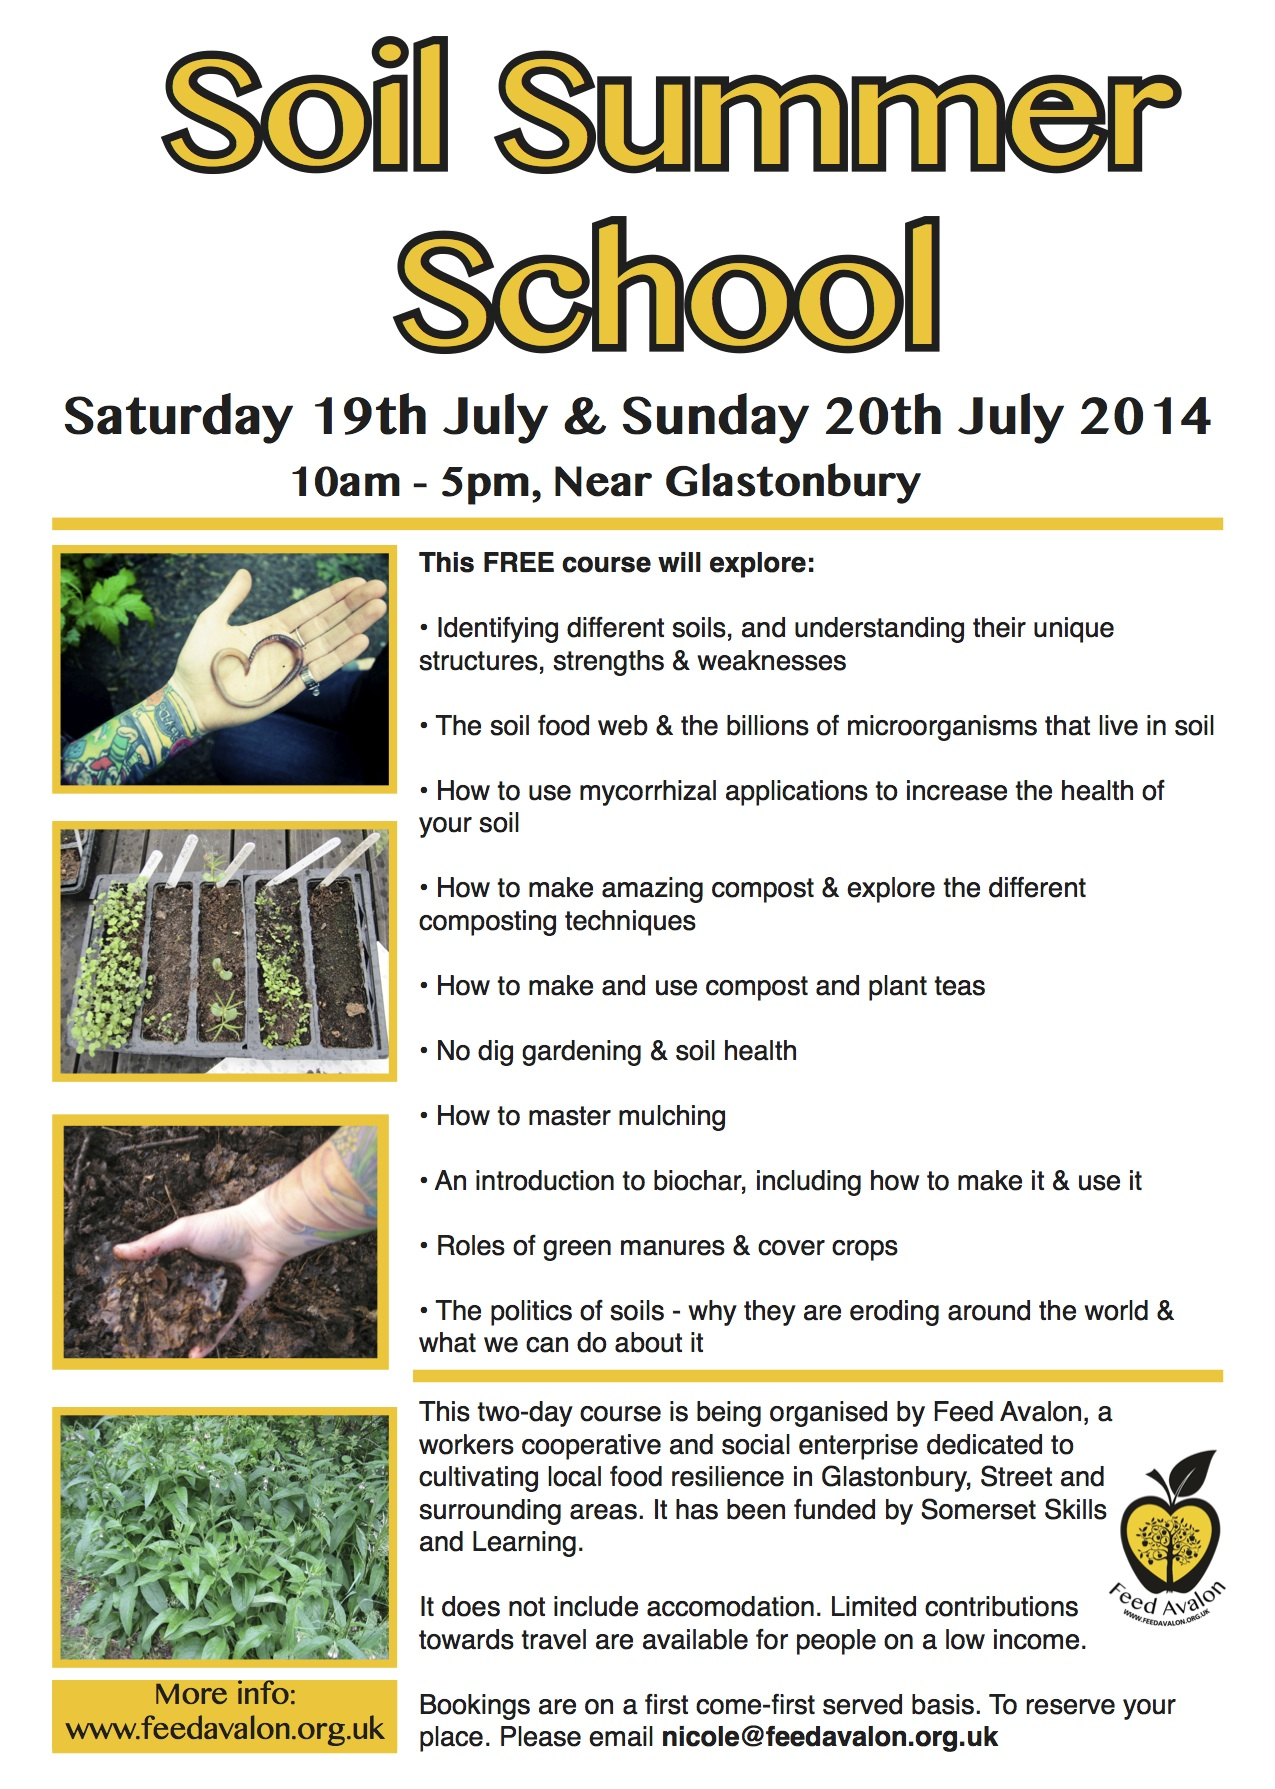 Soil Summer School